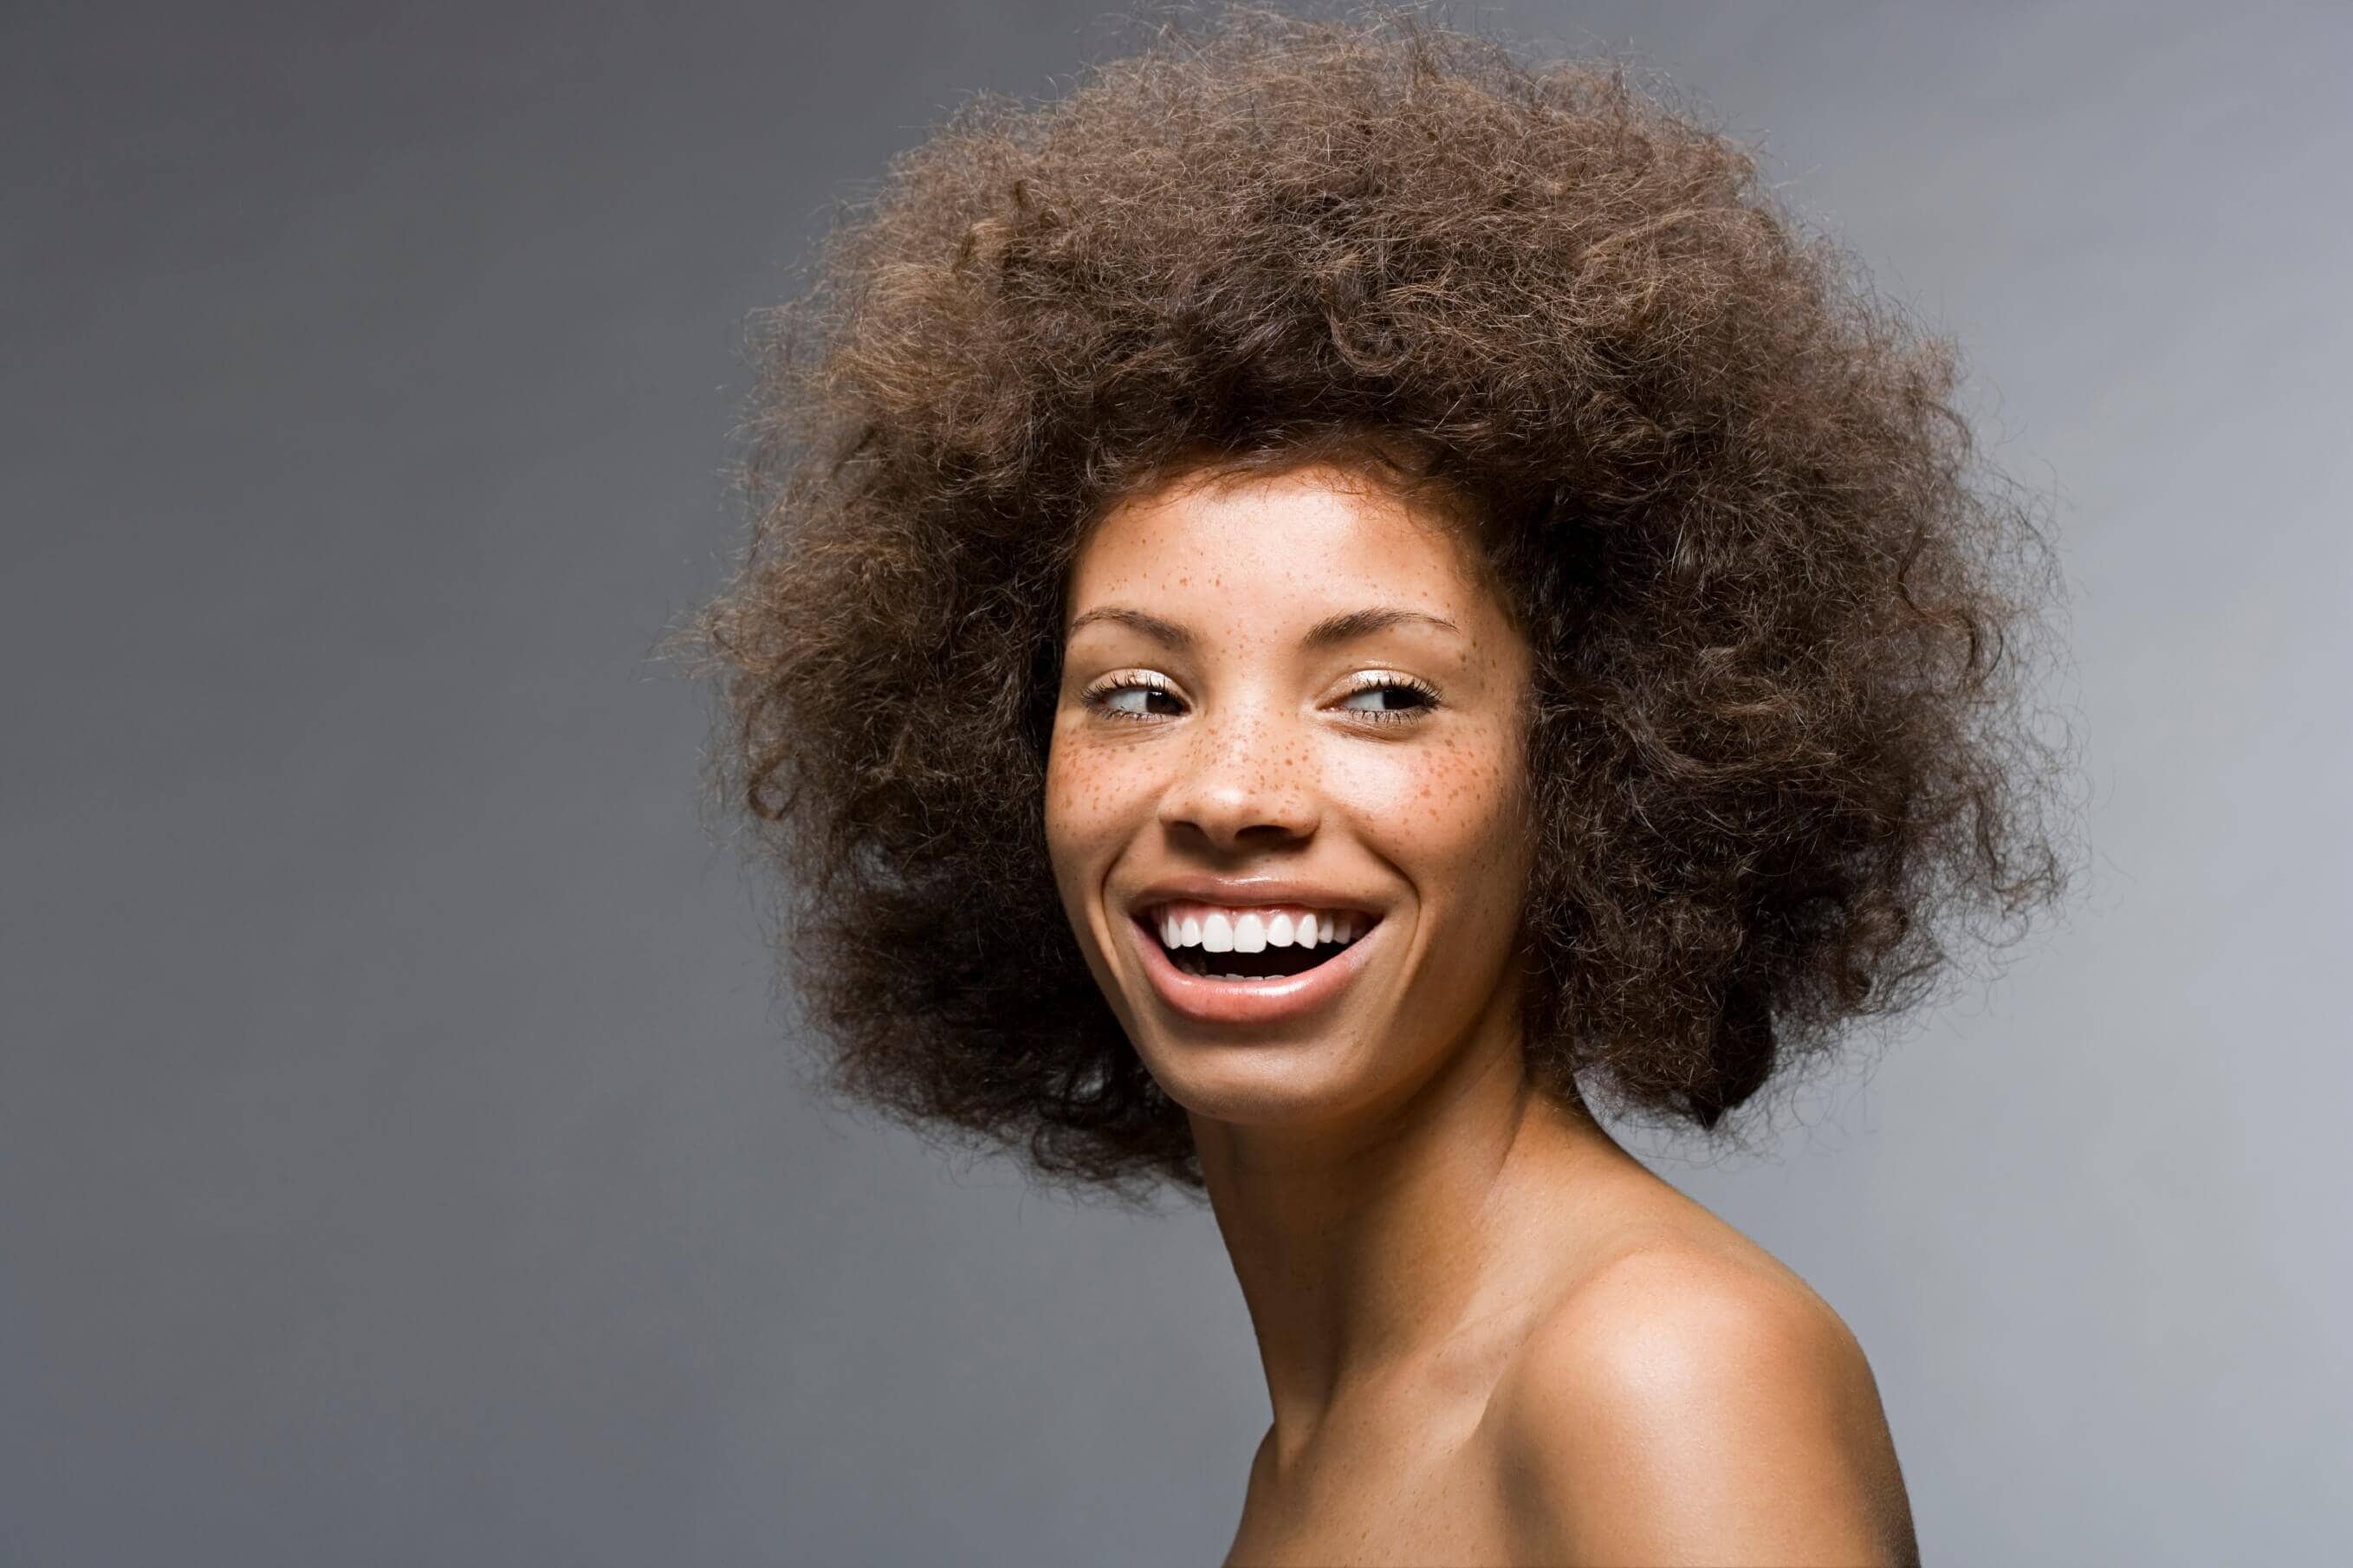 afro hairstyle mini fro